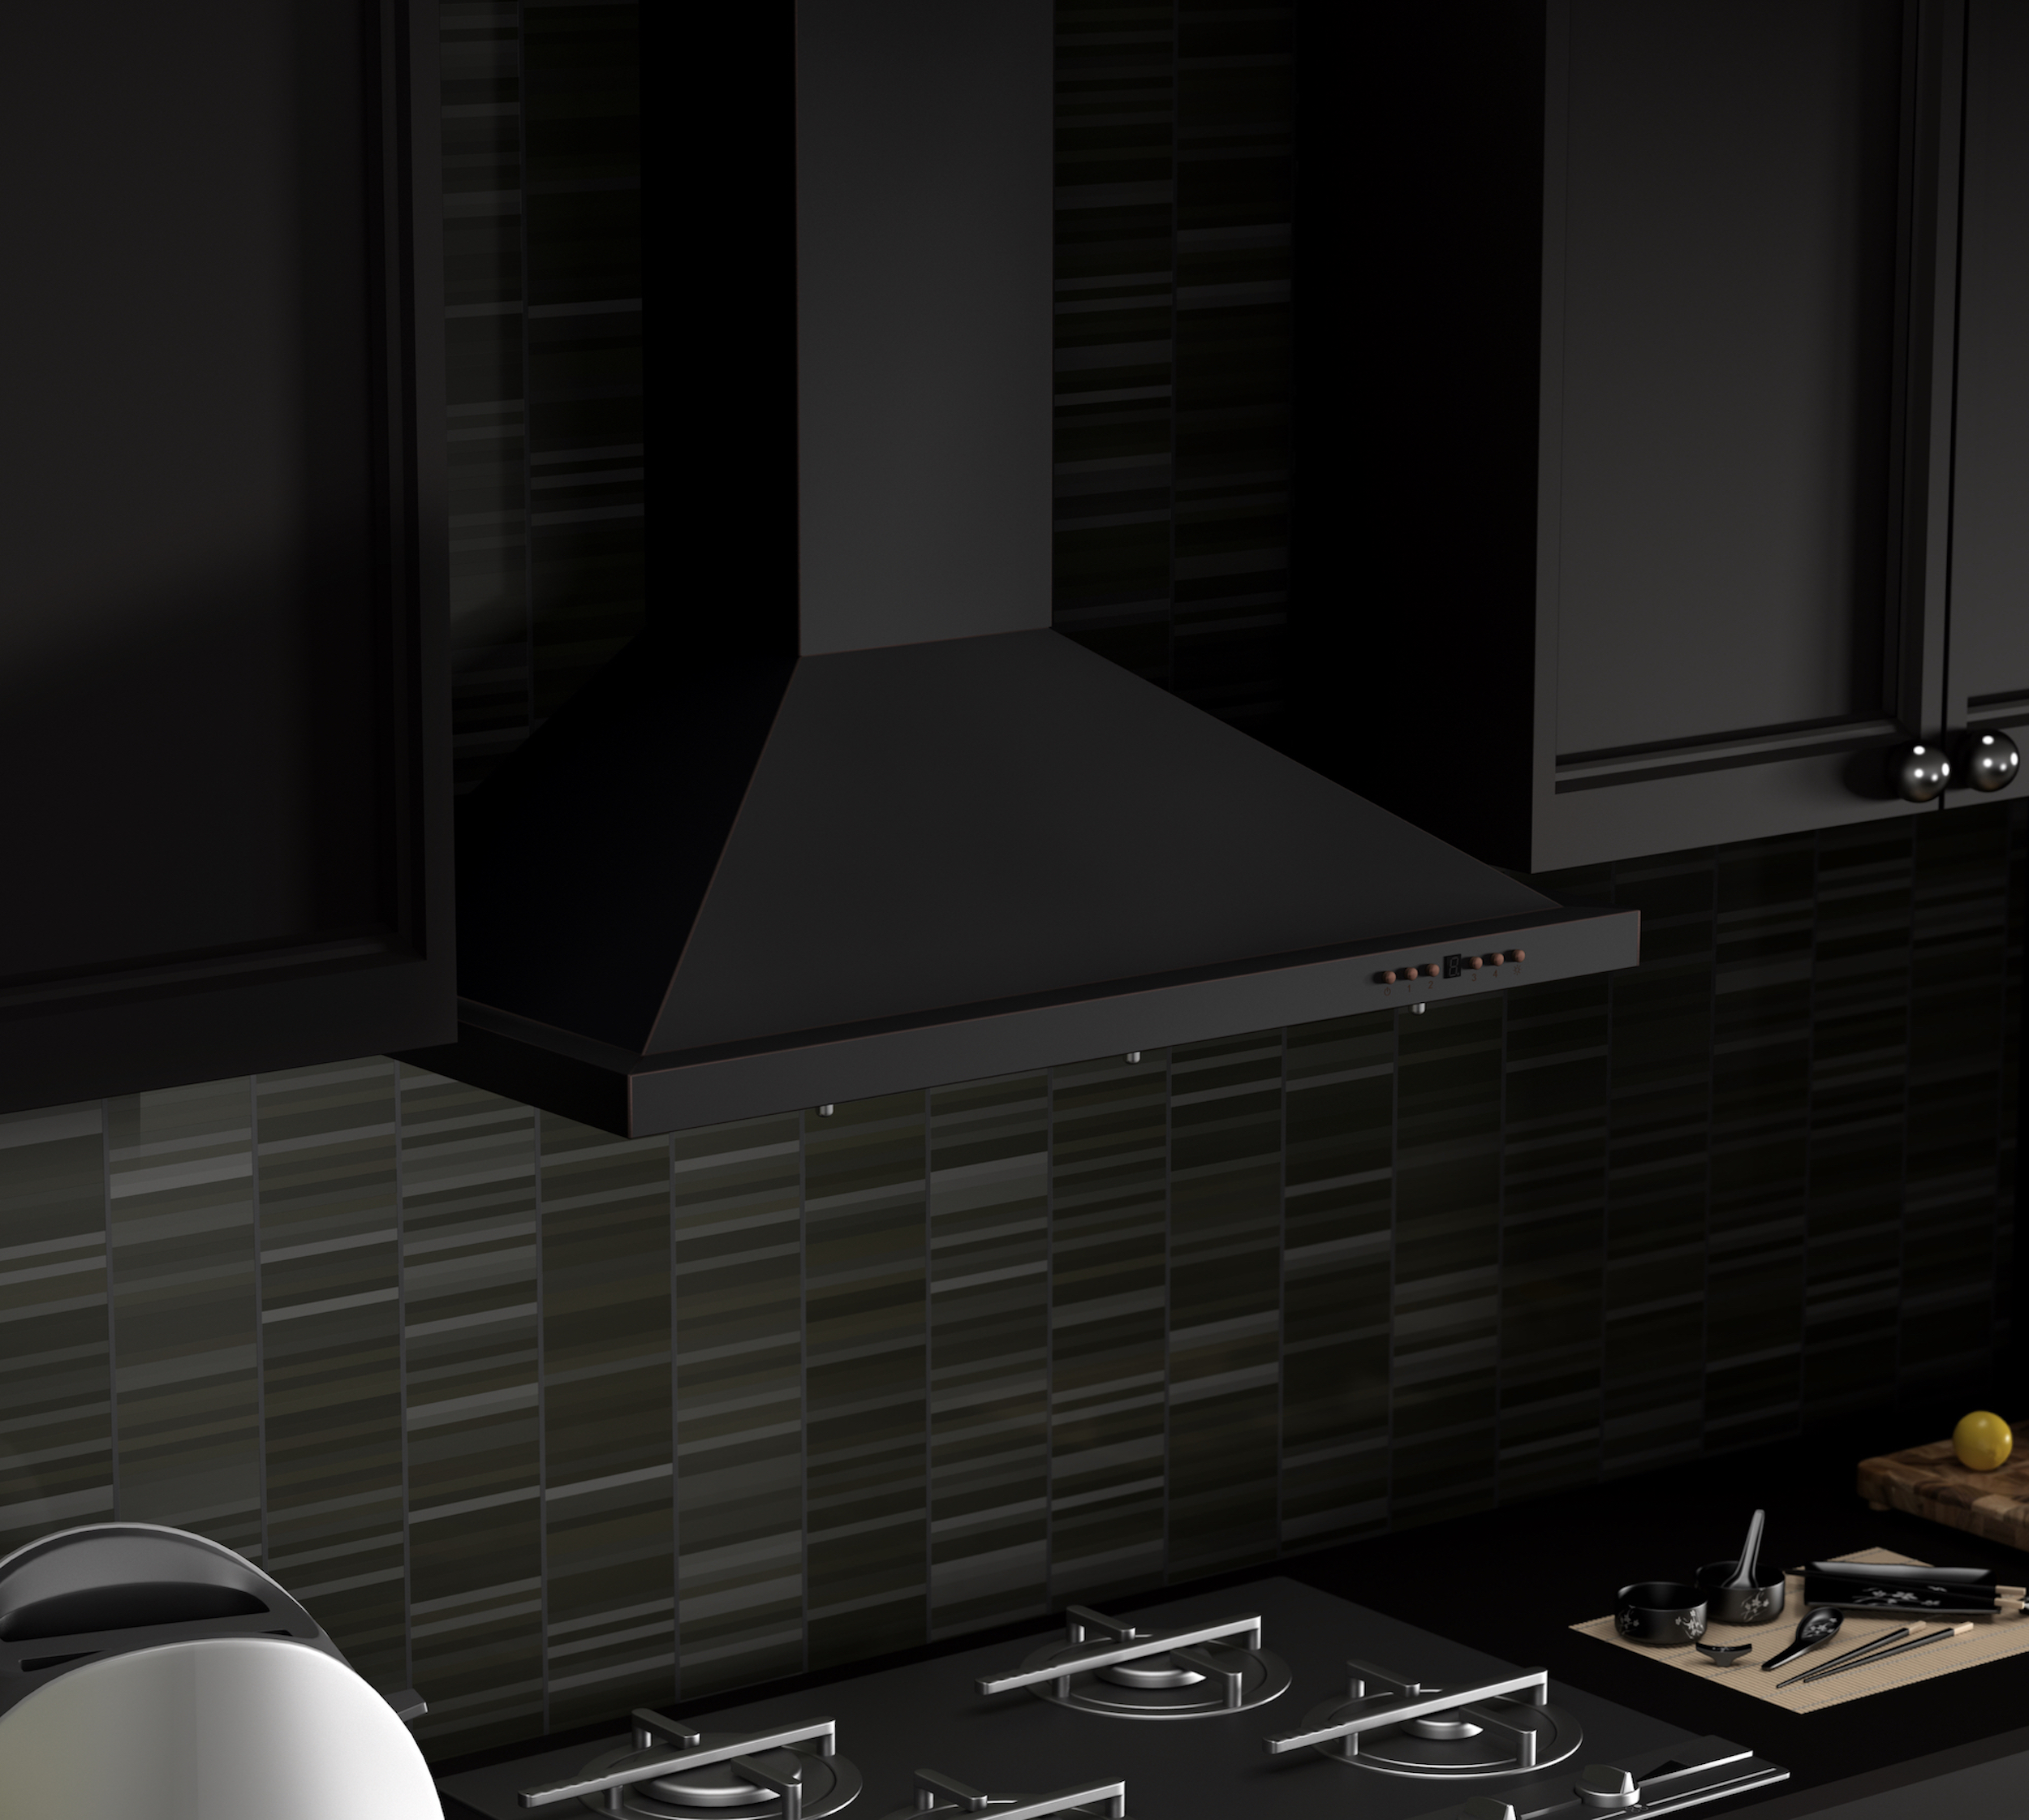 zline-copper-wall-mounted-range-hood-8KBB-detail.jpg